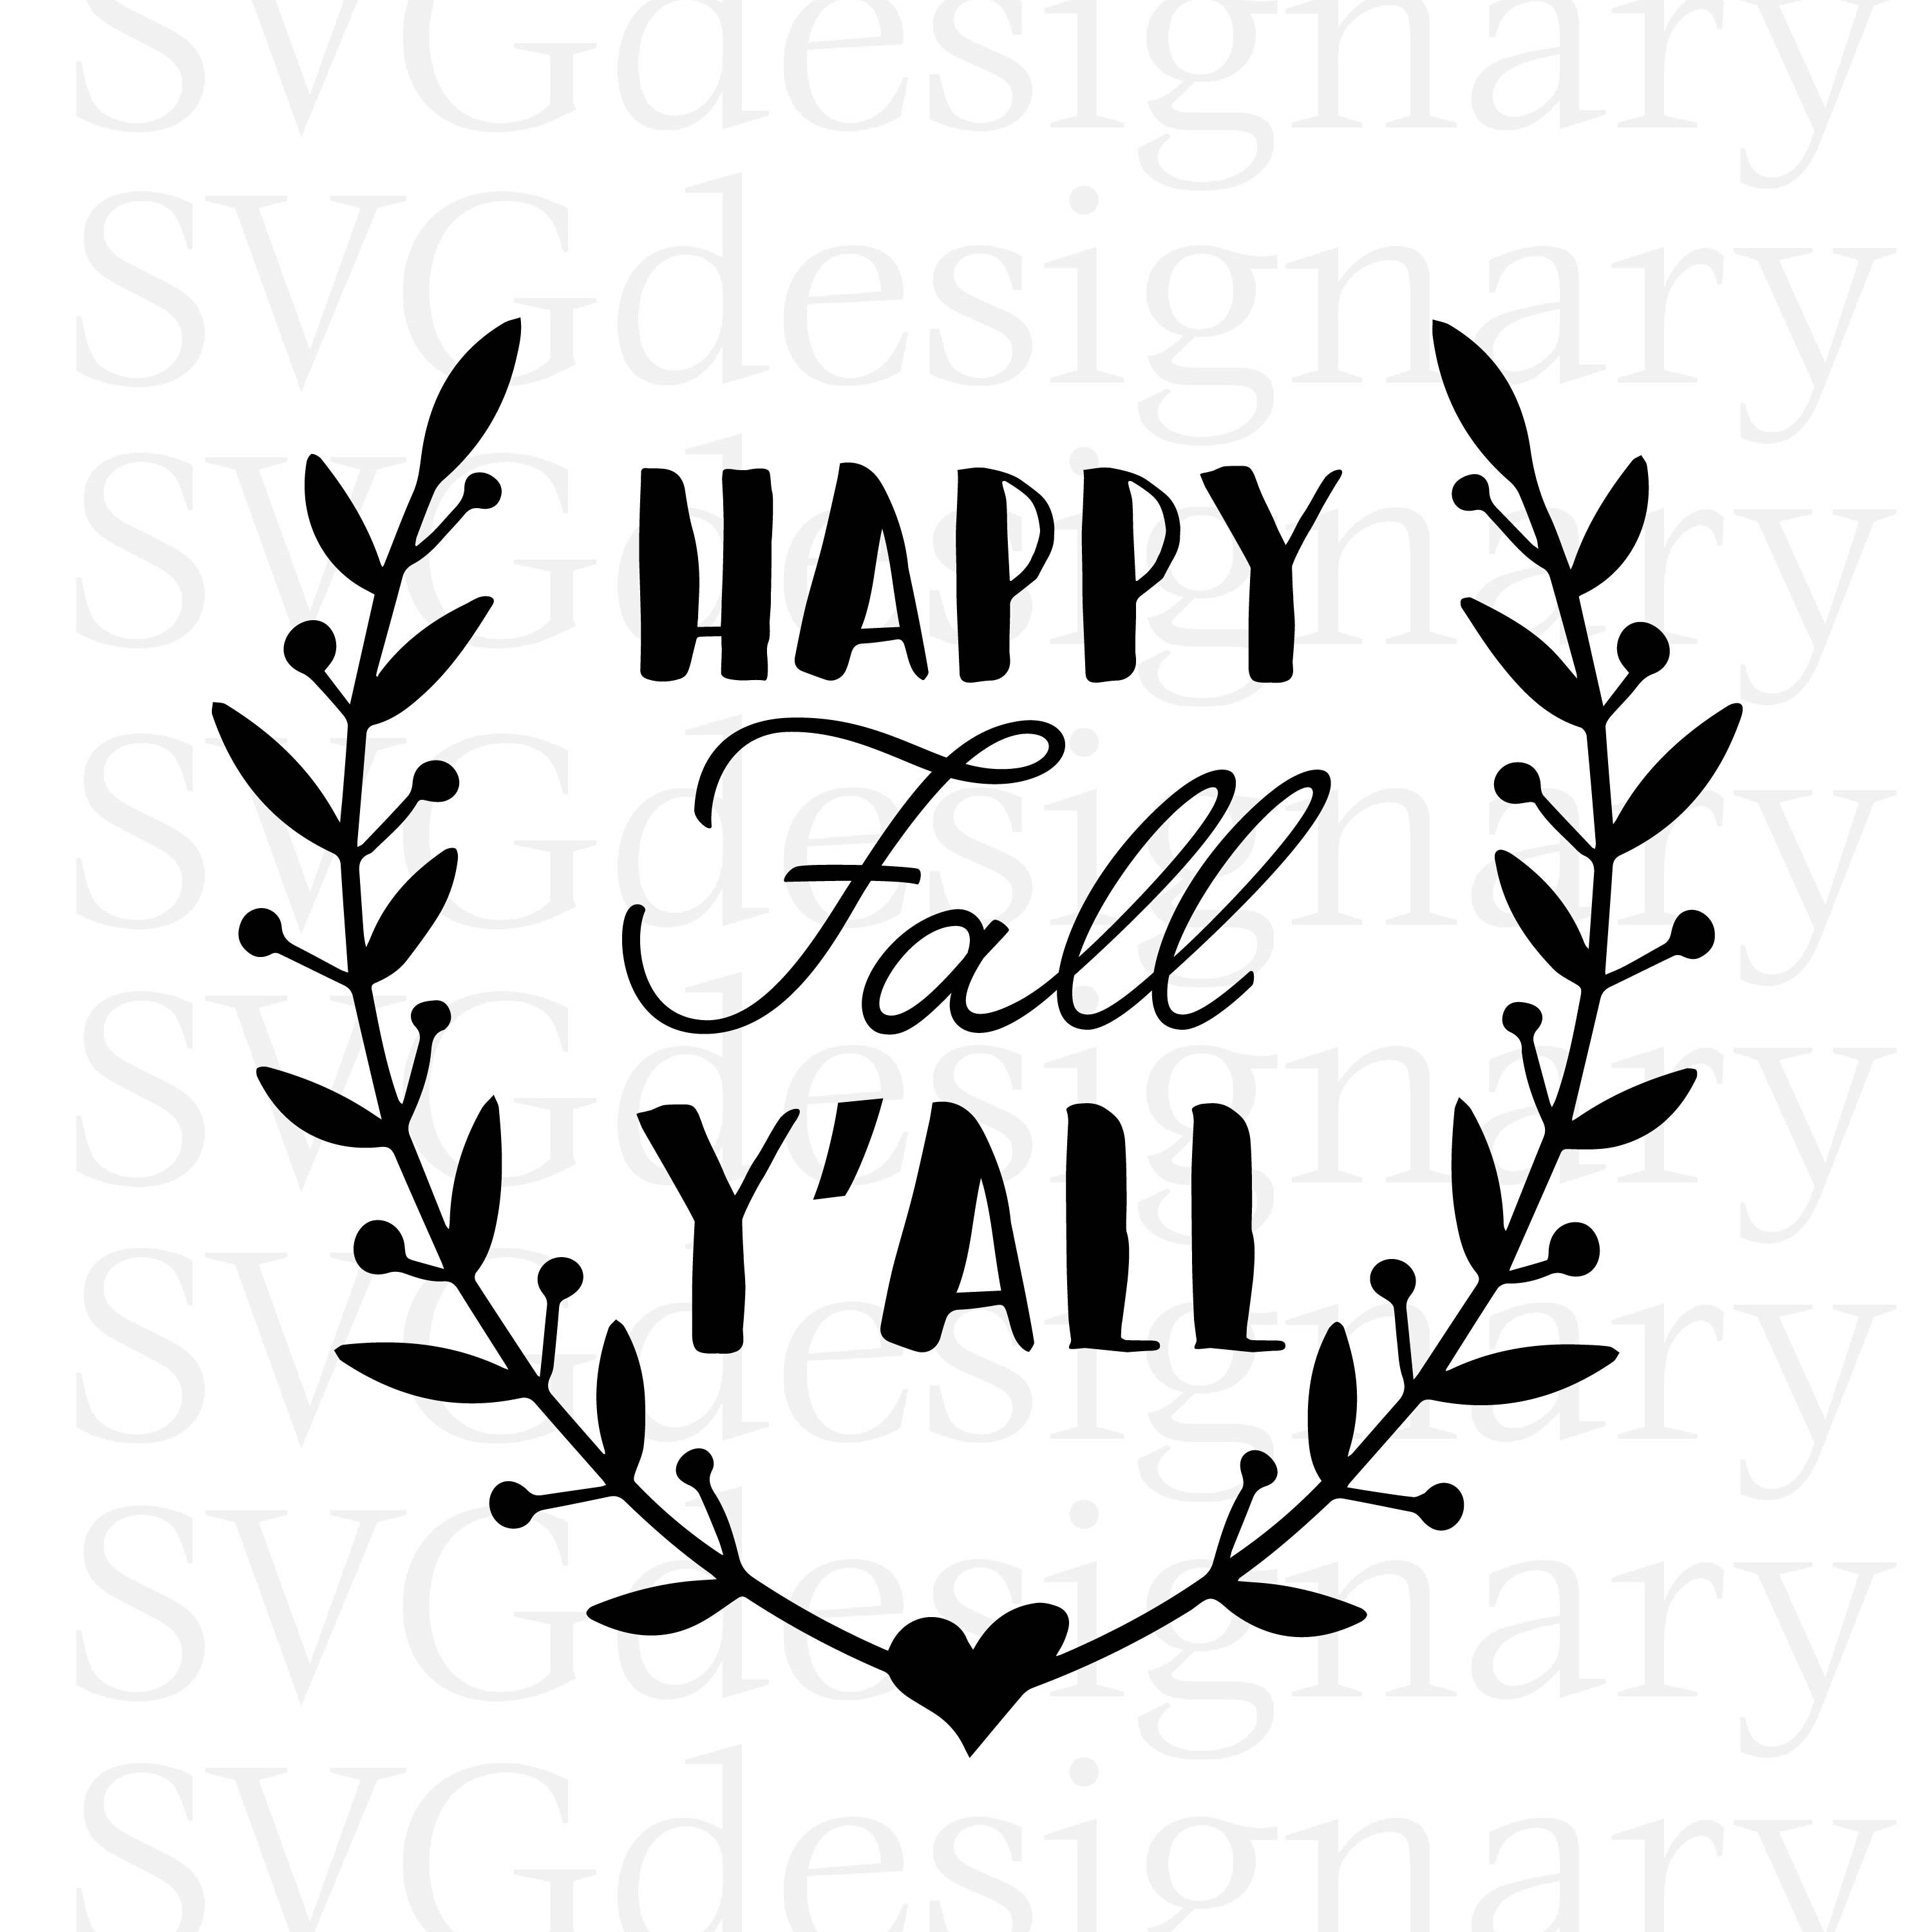 Happy Fall Y All Svg Png Digital Downloa 157031 Png Images Pngio